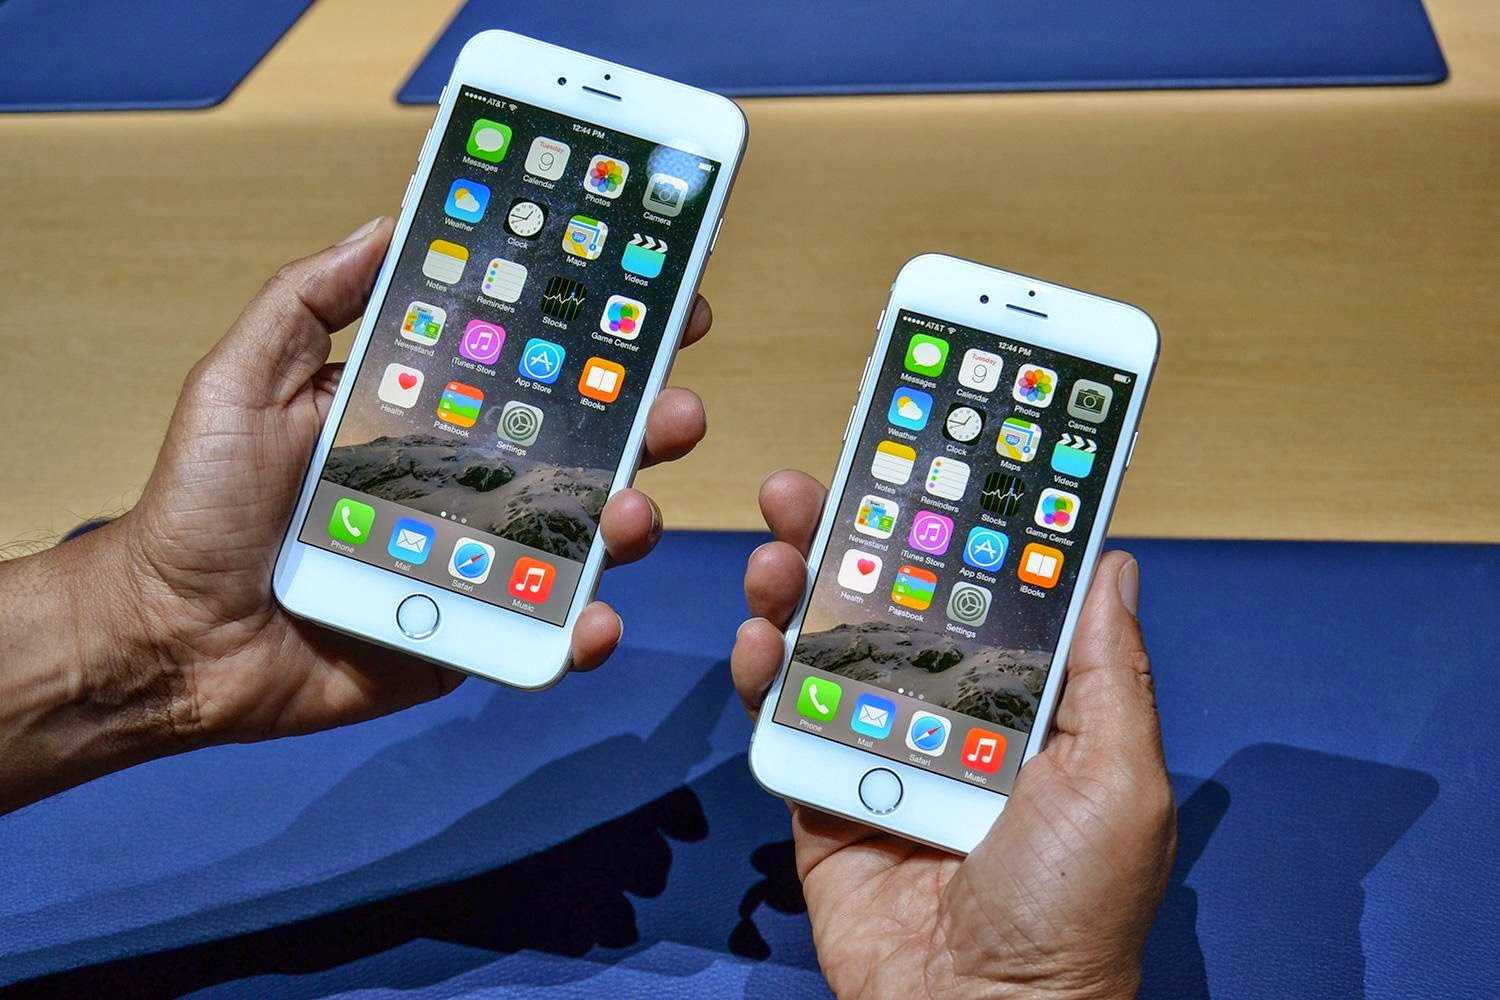 IPhone 6 and IPhone 6 Plus Prices in Pakistan.